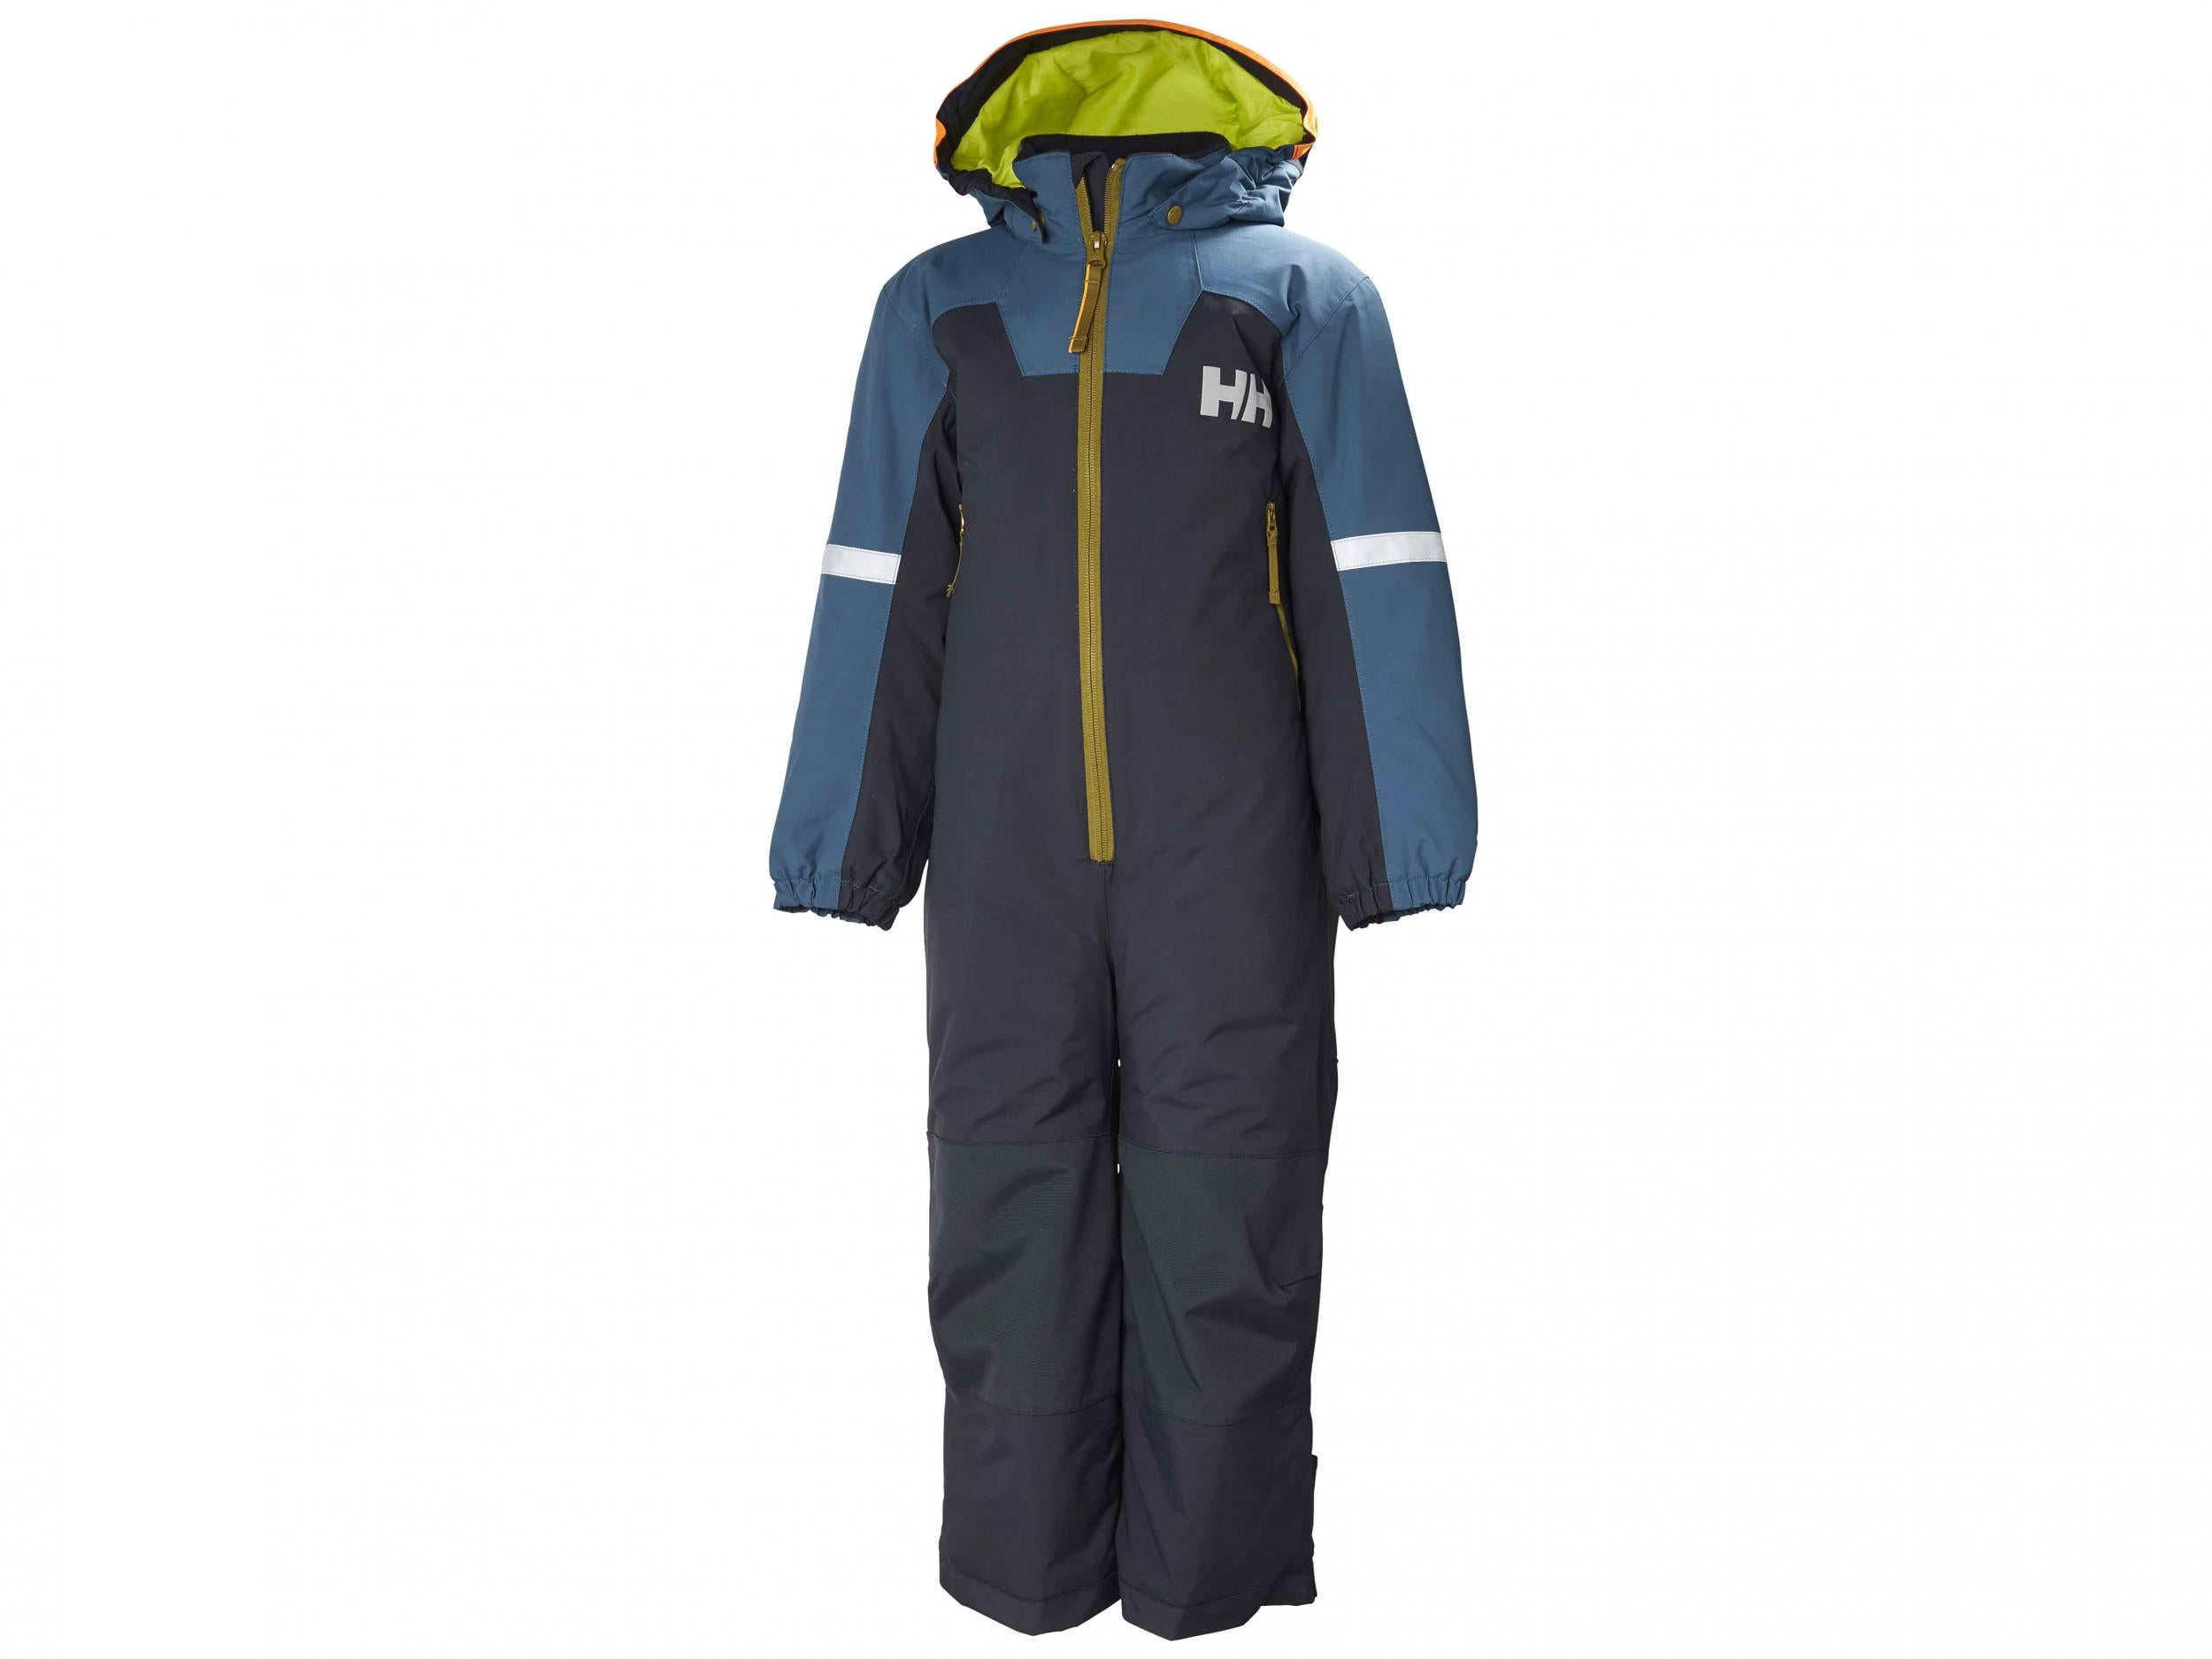 13 best baby snowsuits | The Independent